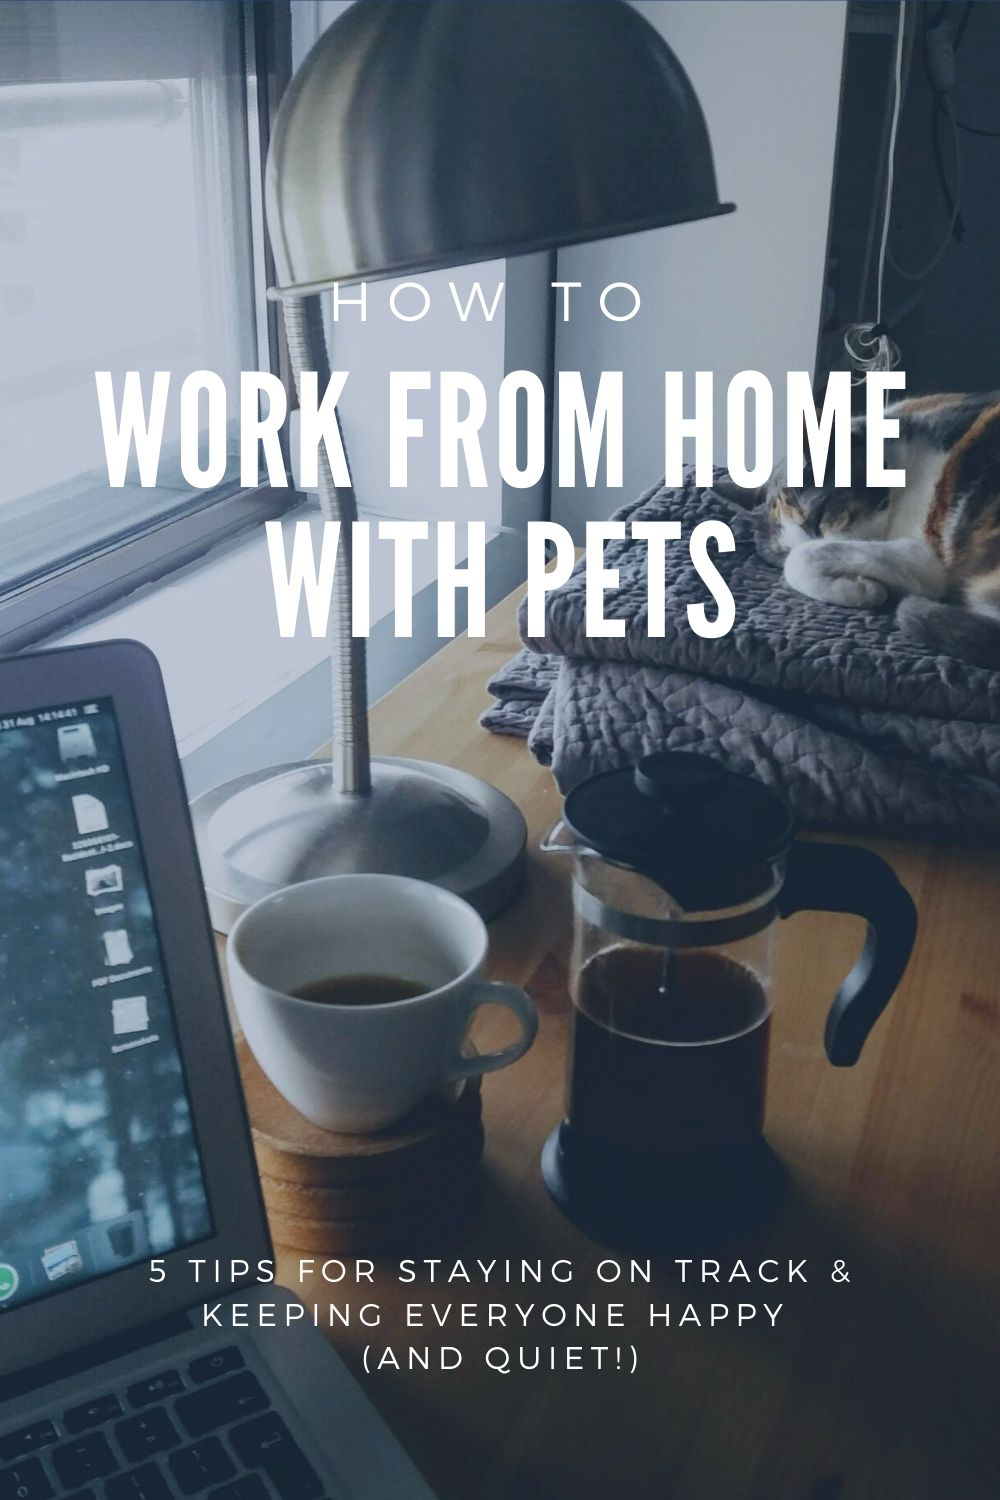 How to work from home with pets